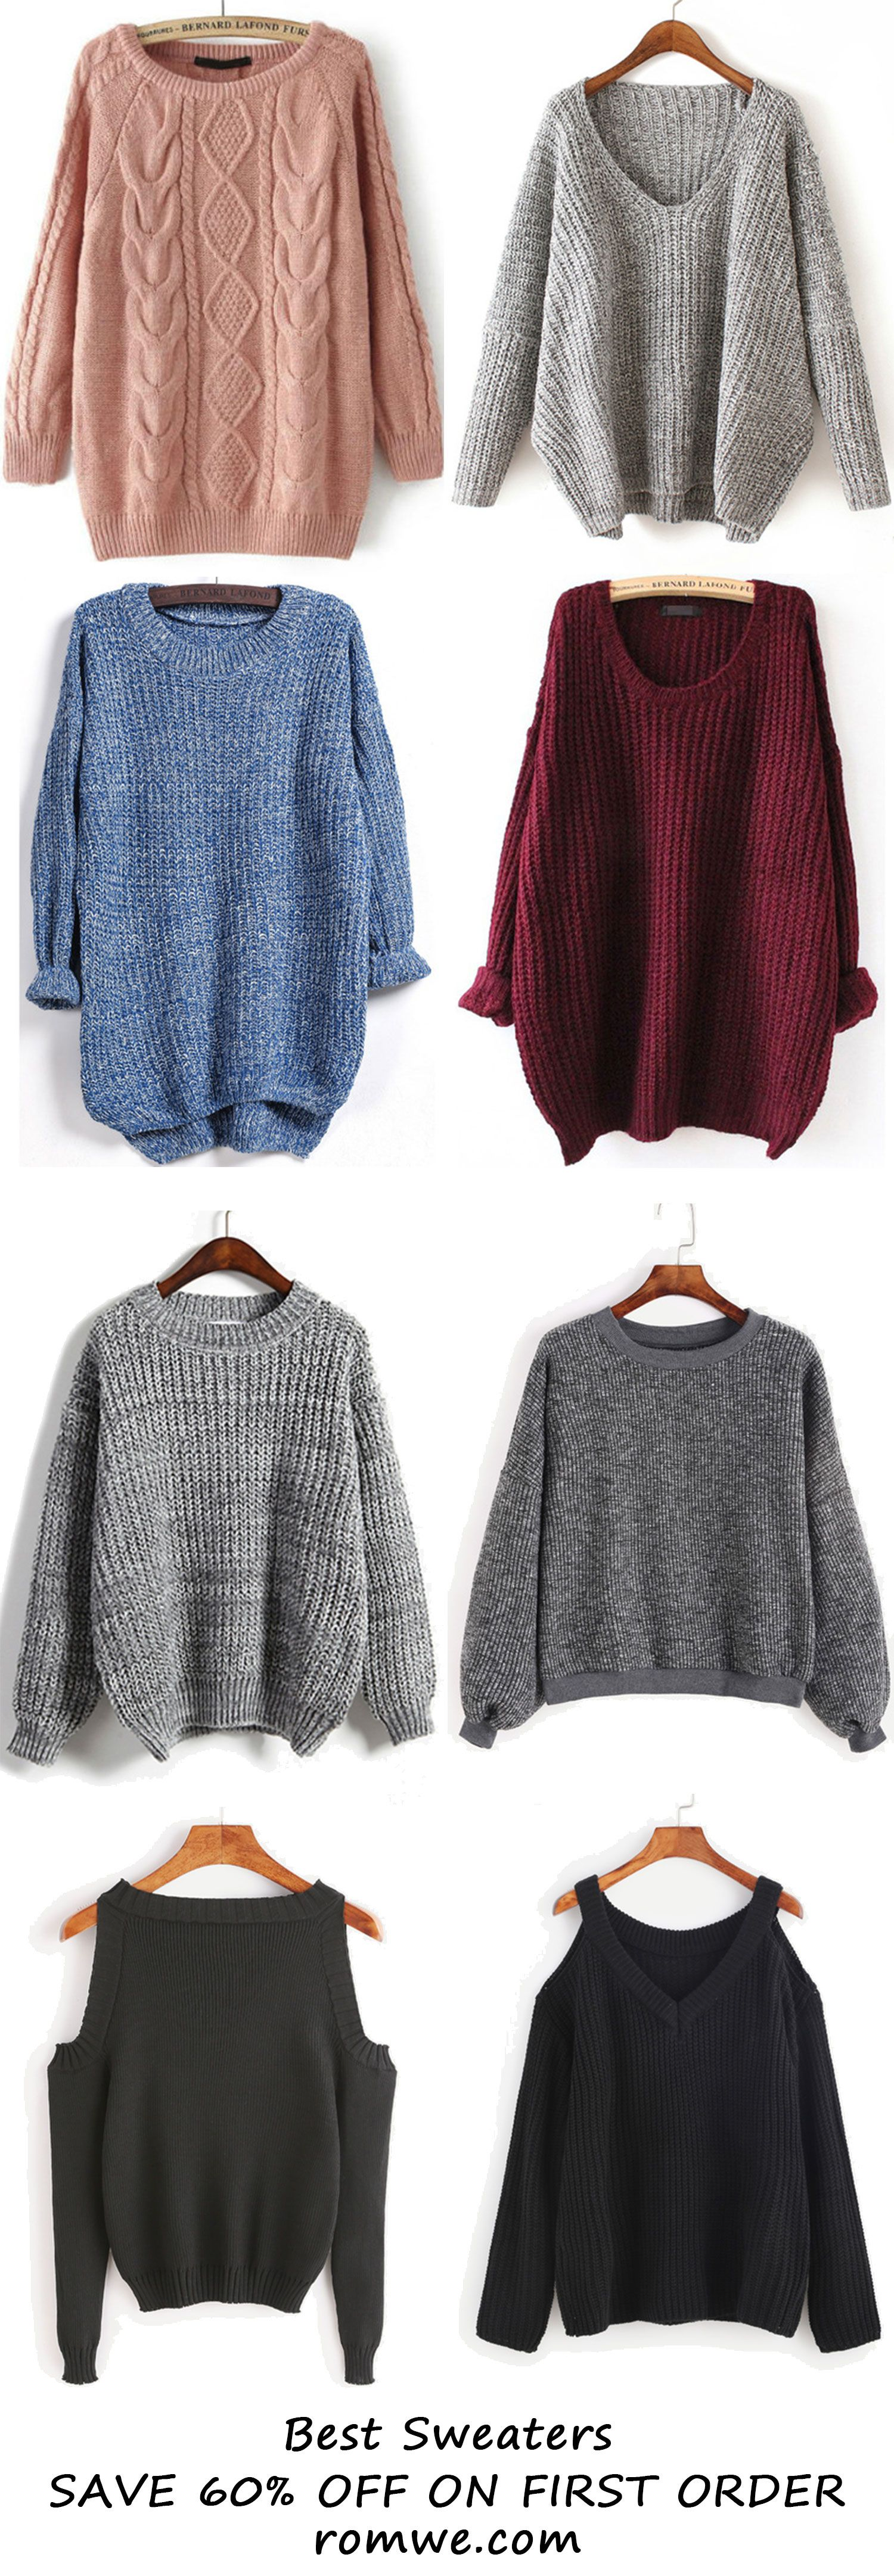 Fall & Winter Sweaters Collection 2016 from romwe.com | Romwe Hot ...